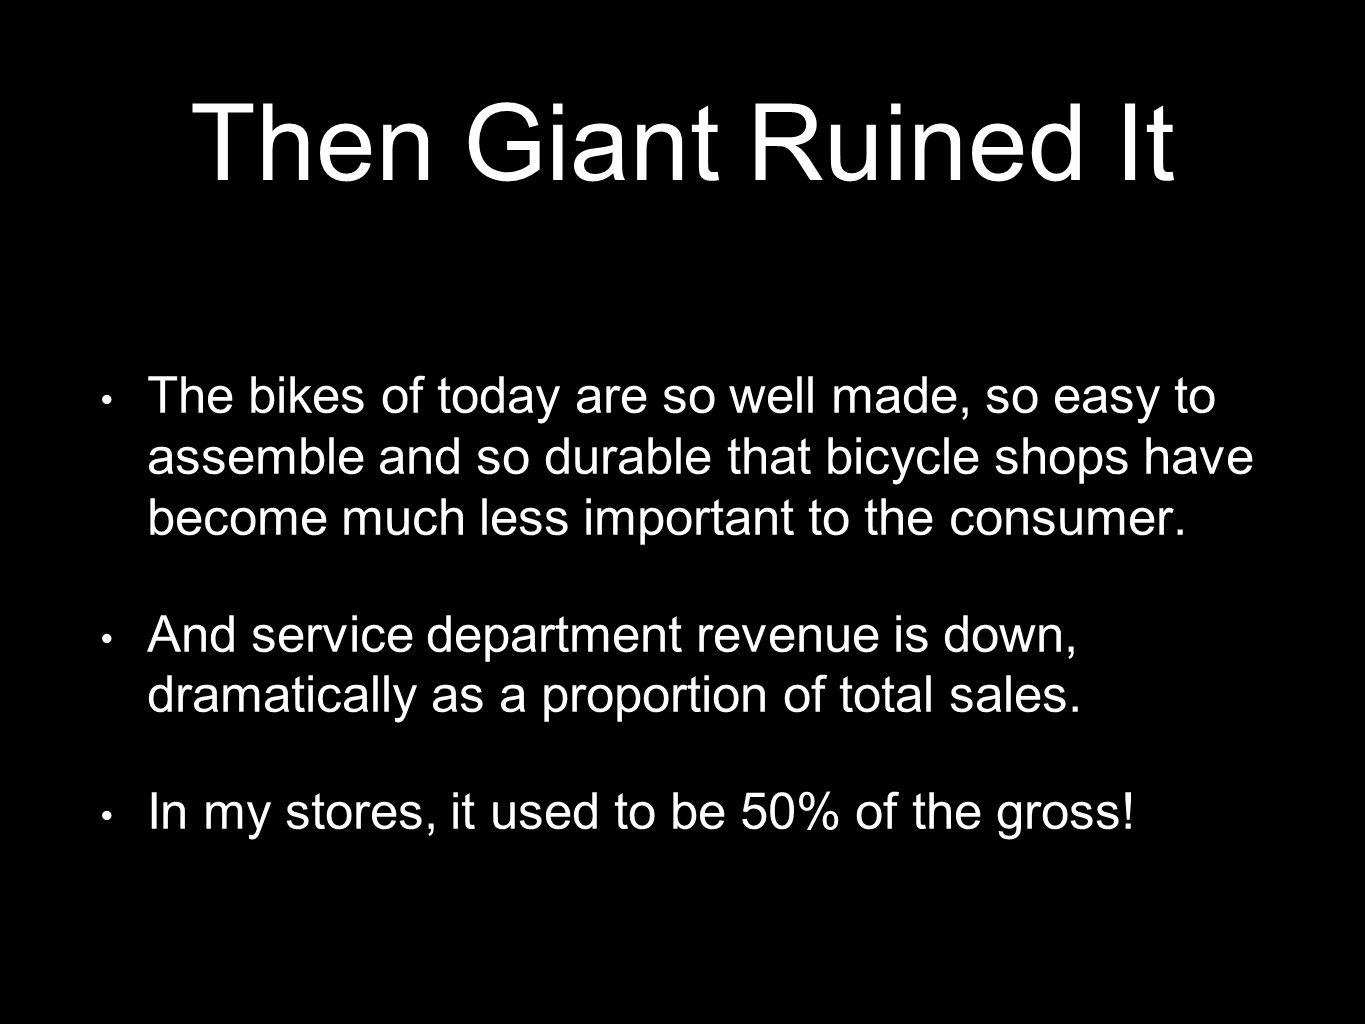 Then Giant Ruined It The bikes of today are so well made, so easy to assemble and so durable that bicycle shops have become much less important to the